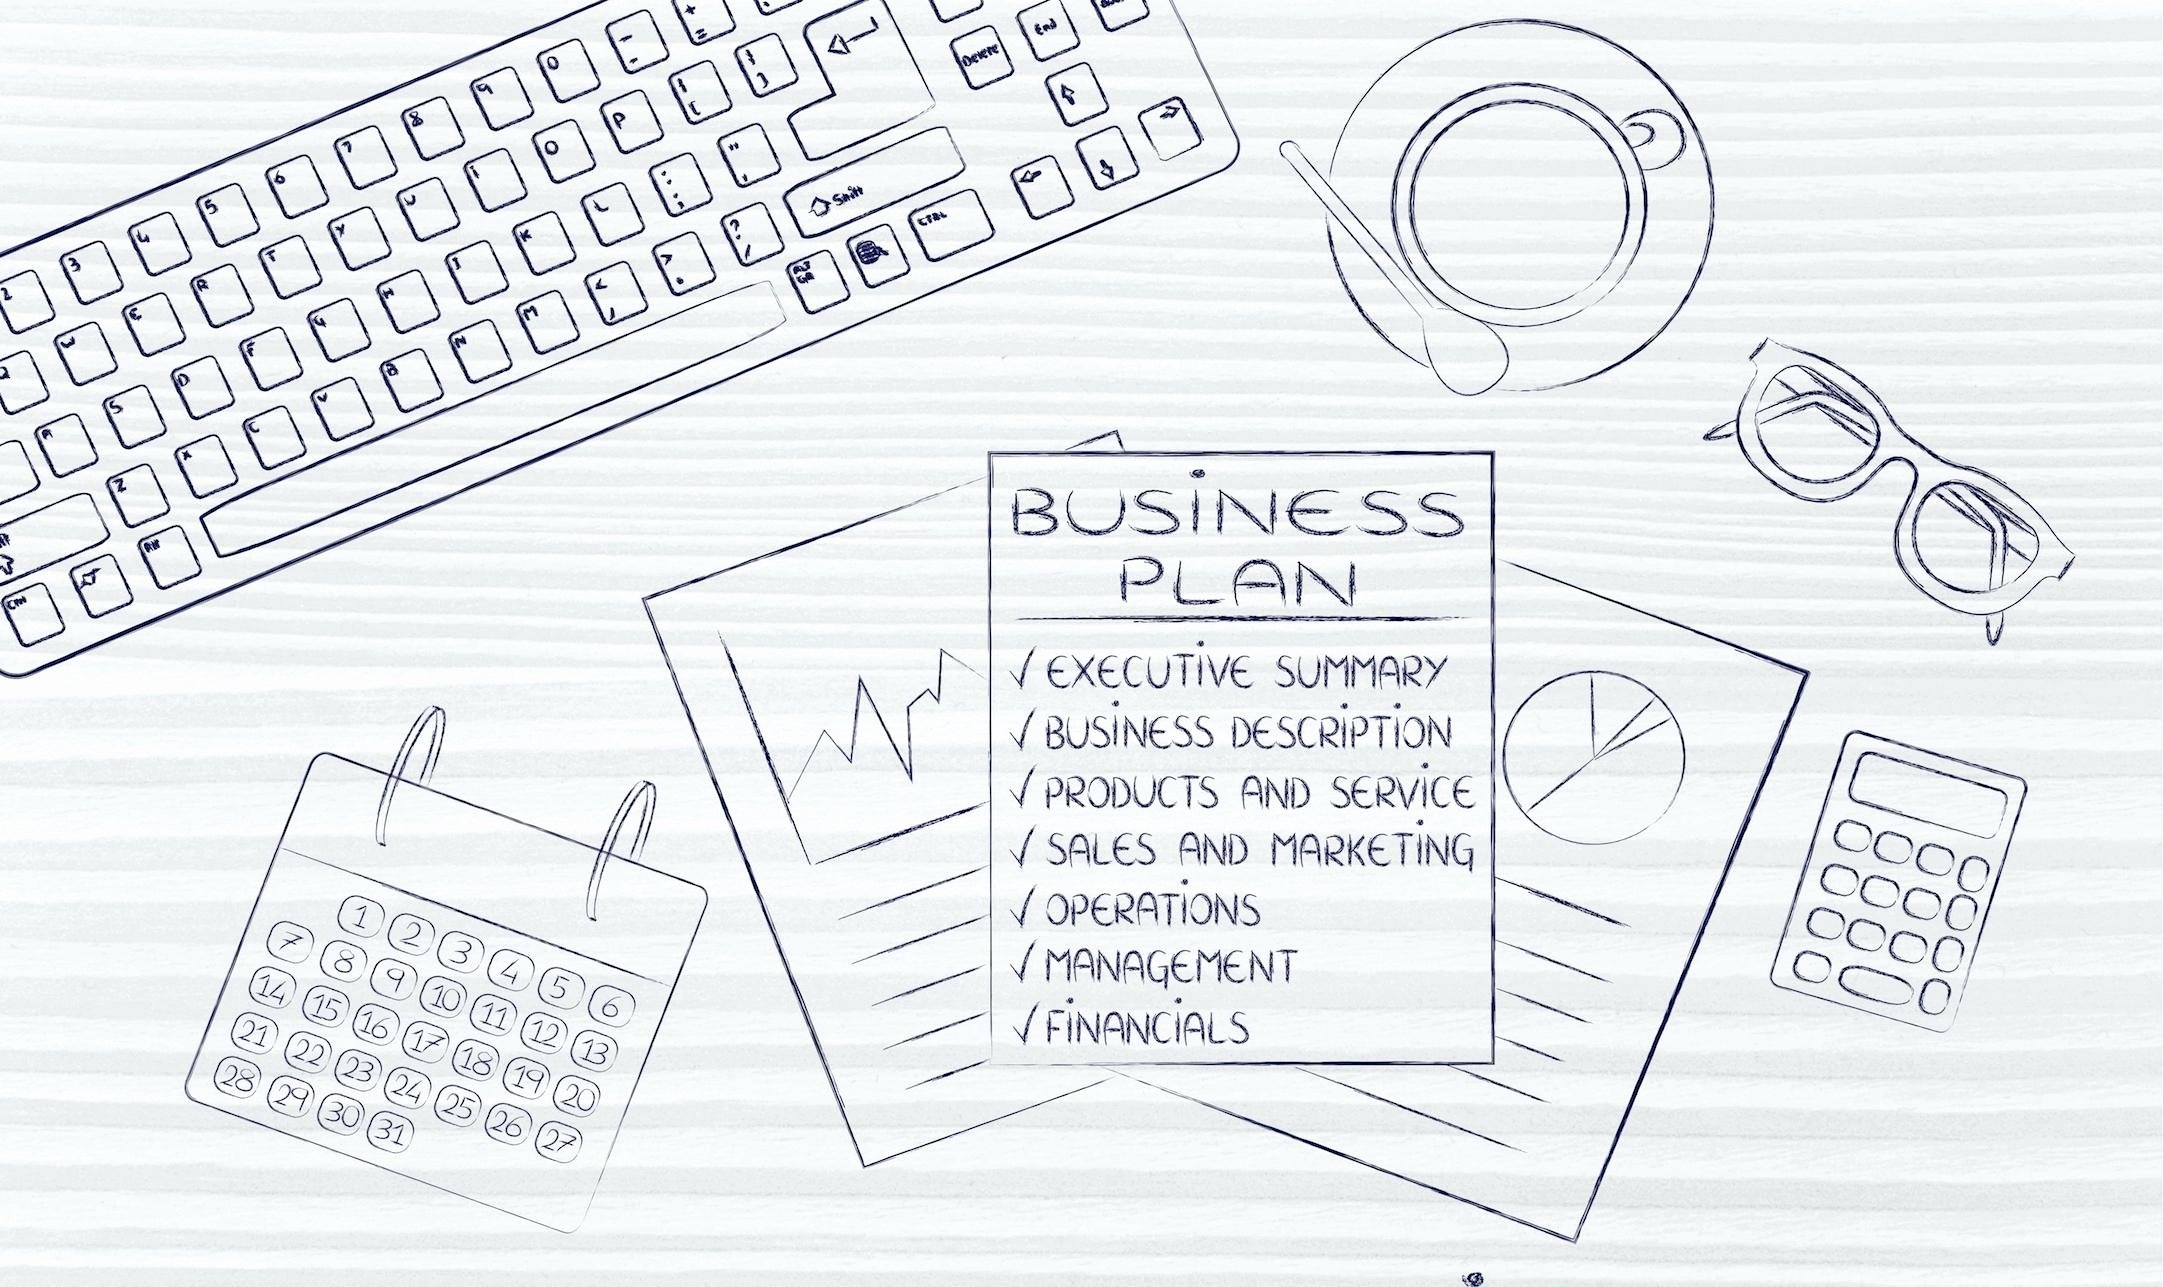 Consulting Business Plan Template Unique Business Plan for Consulting Business Consulting Business